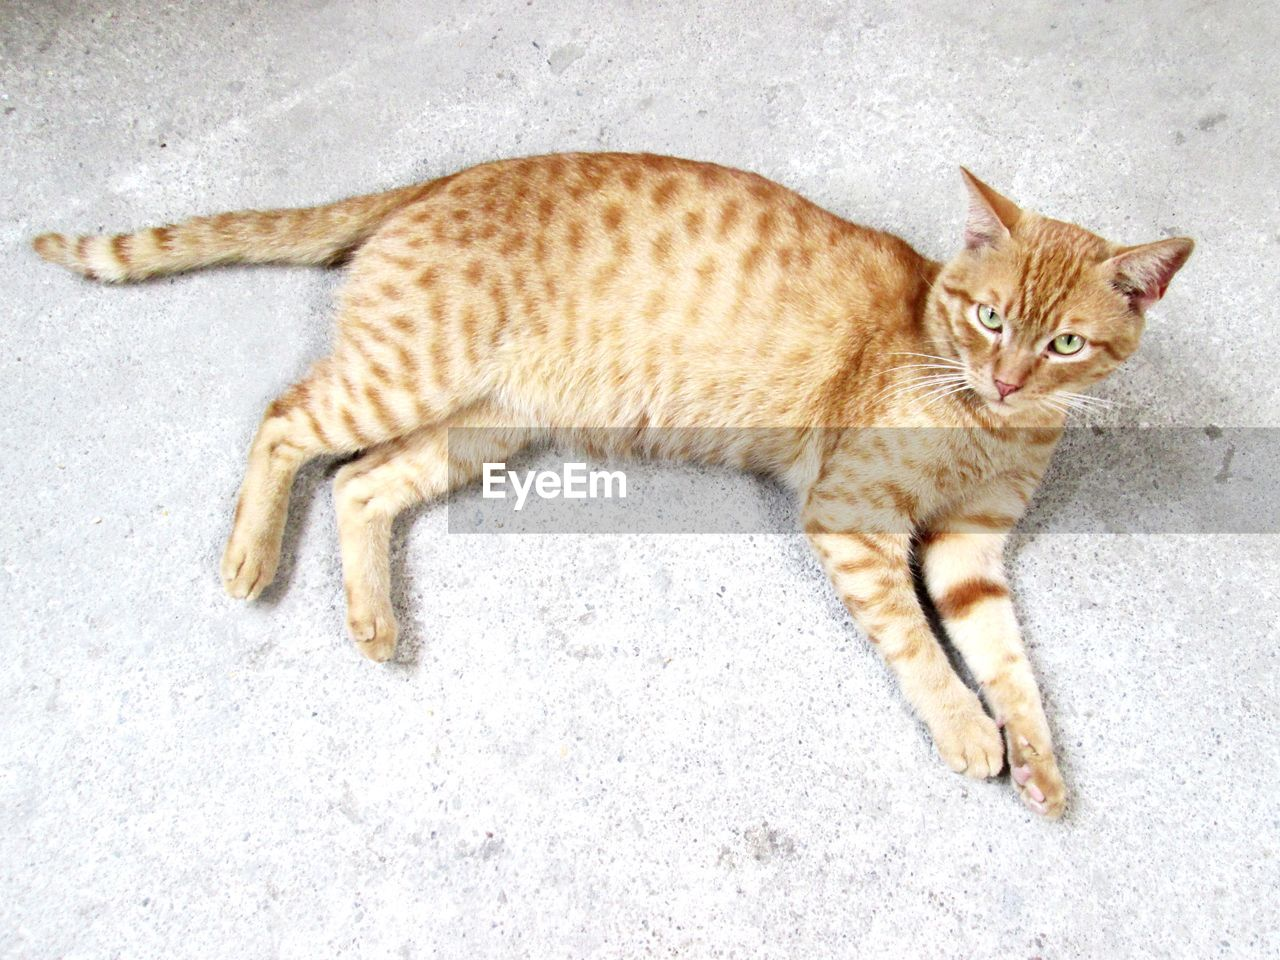 domestic, pets, domestic cat, cat, feline, domestic animals, mammal, one animal, full length, relaxation, vertebrate, no people, high angle view, lying down, portrait, resting, whisker, tabby, ginger cat